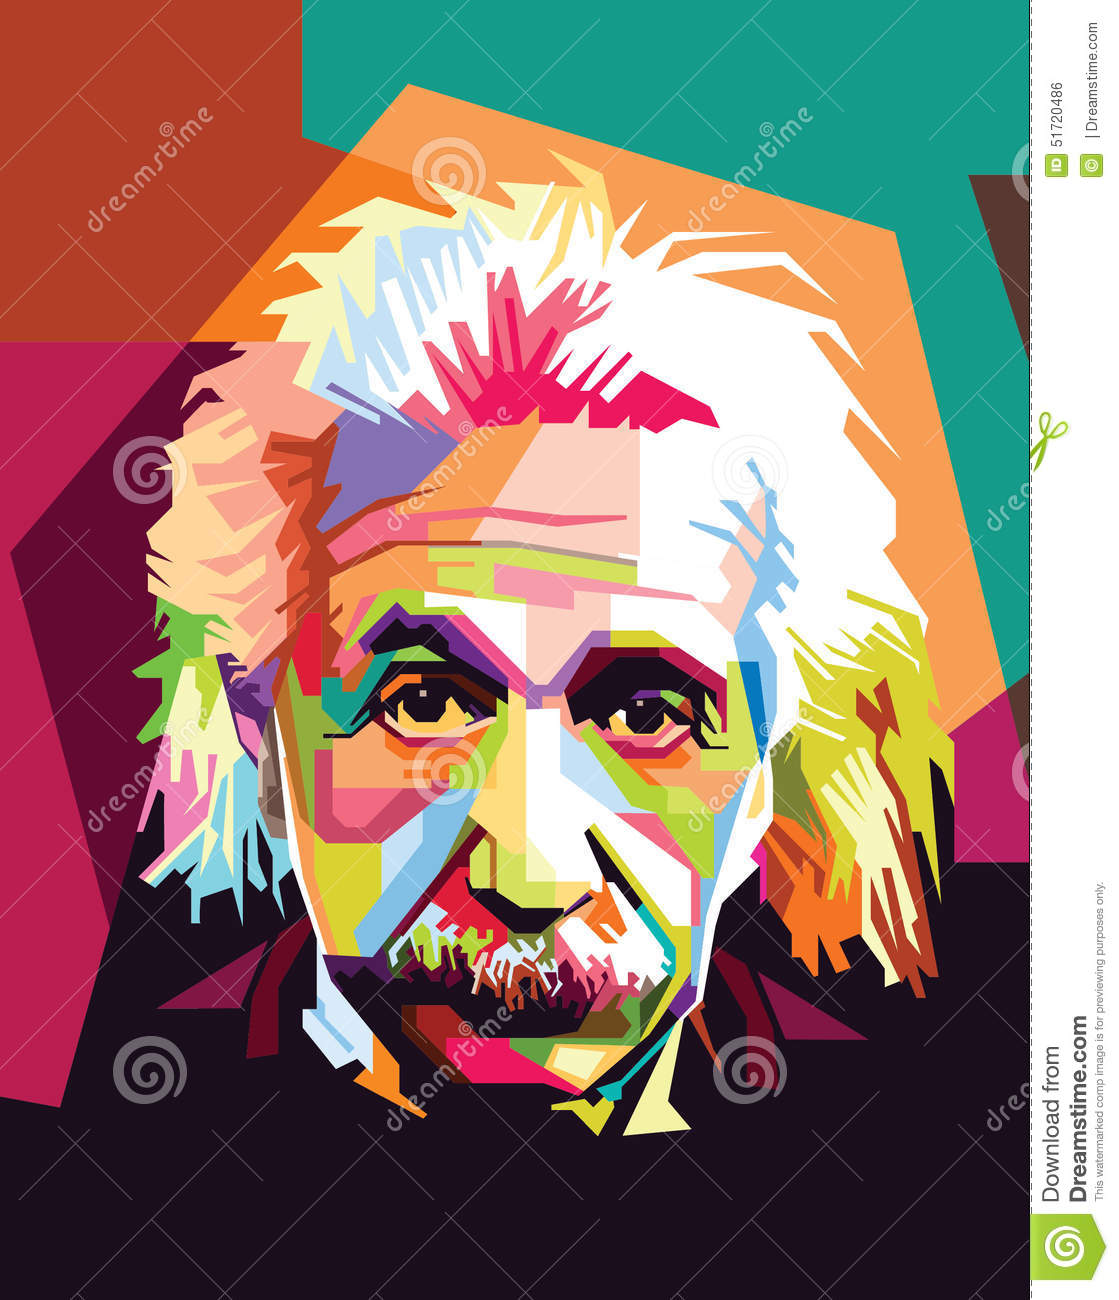 albert einstein pop art redaktionelles foto bild 51720486. Black Bedroom Furniture Sets. Home Design Ideas